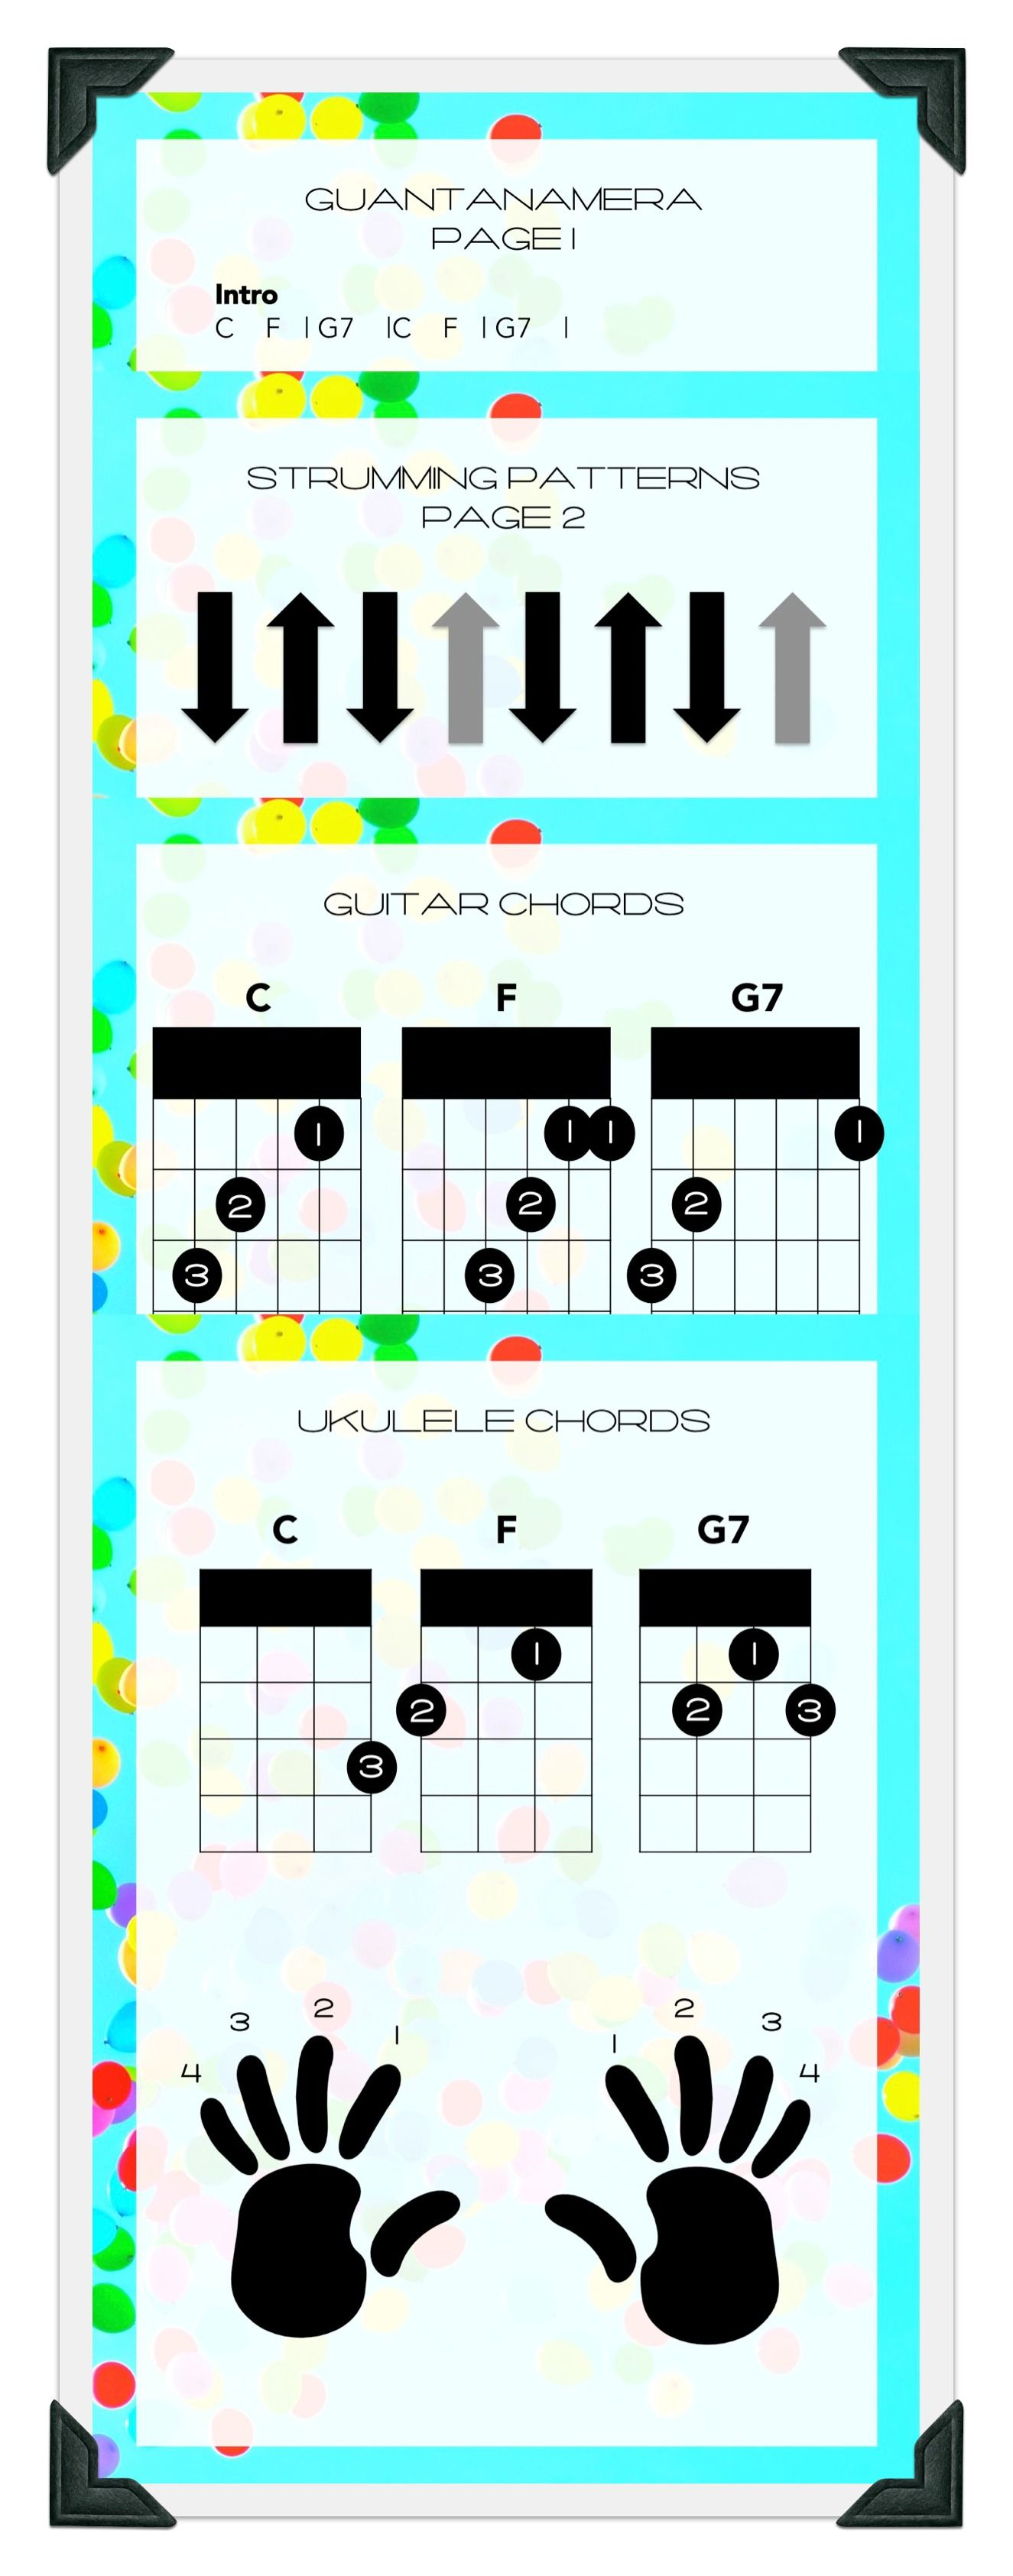 Latin music chord lesson for ukulele and guitar guantanamera latin music chord lesson for ukulele and guitar guantanamera la bamba lyrics hexwebz Image collections